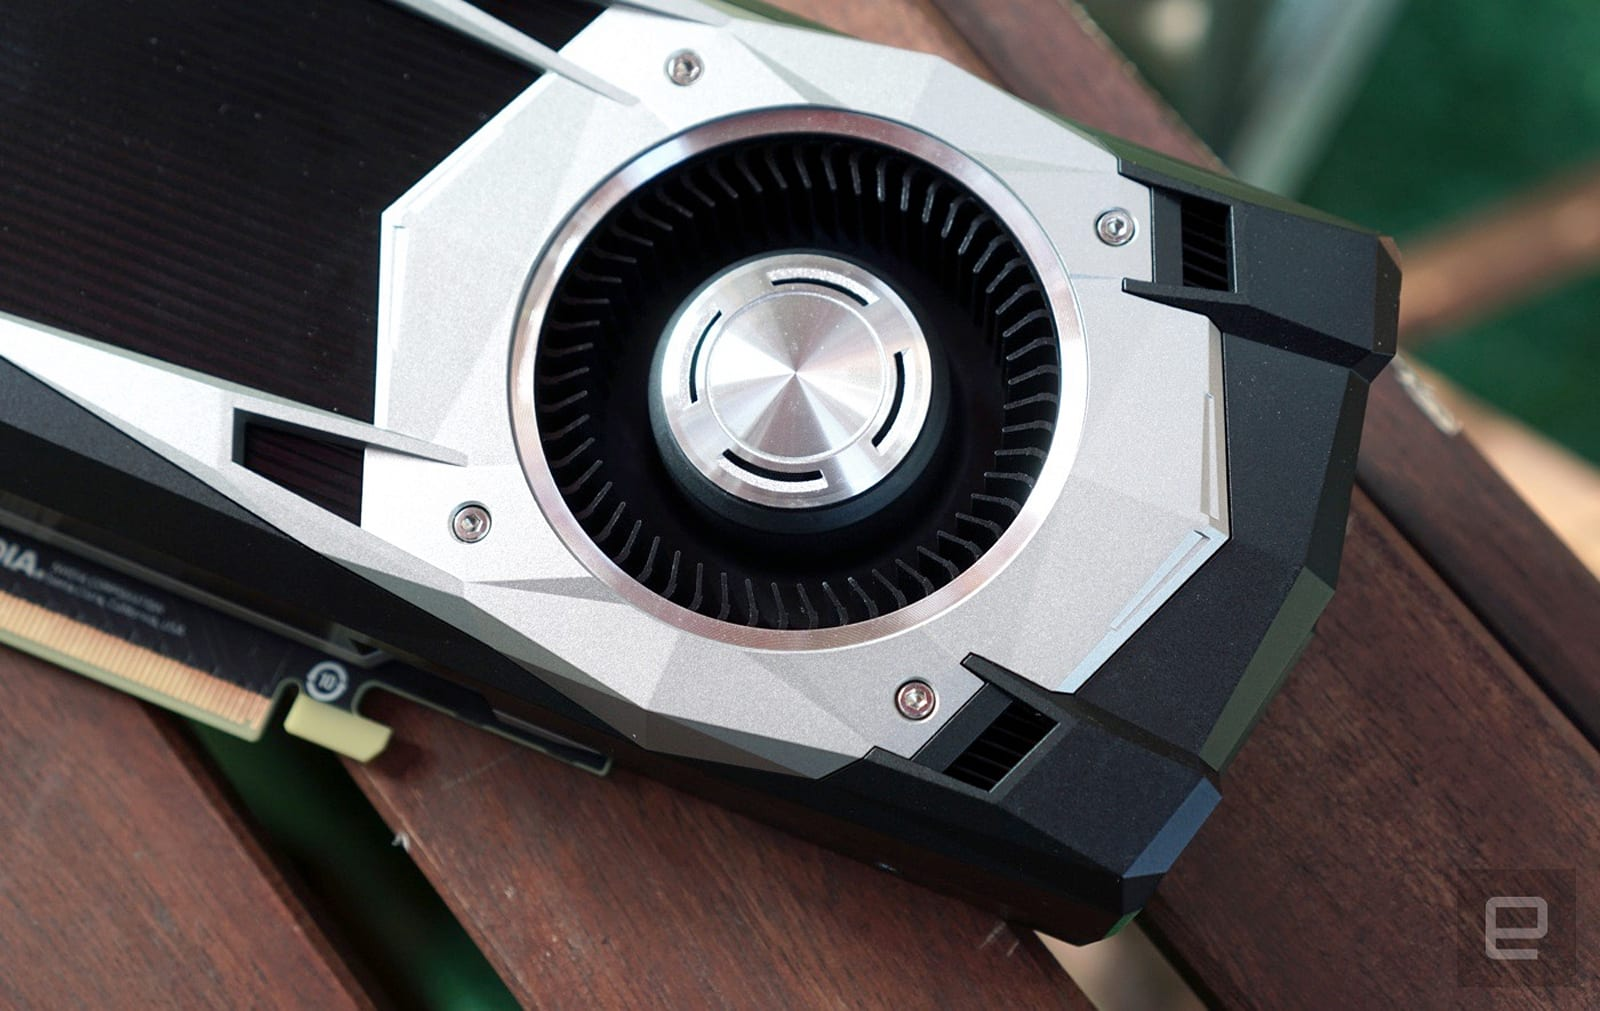 Nvidias Geforce Gtx 1060 Gives You Gaming Power On A Budget Mouse Midas Force Furious X7 3dmark Firestrike